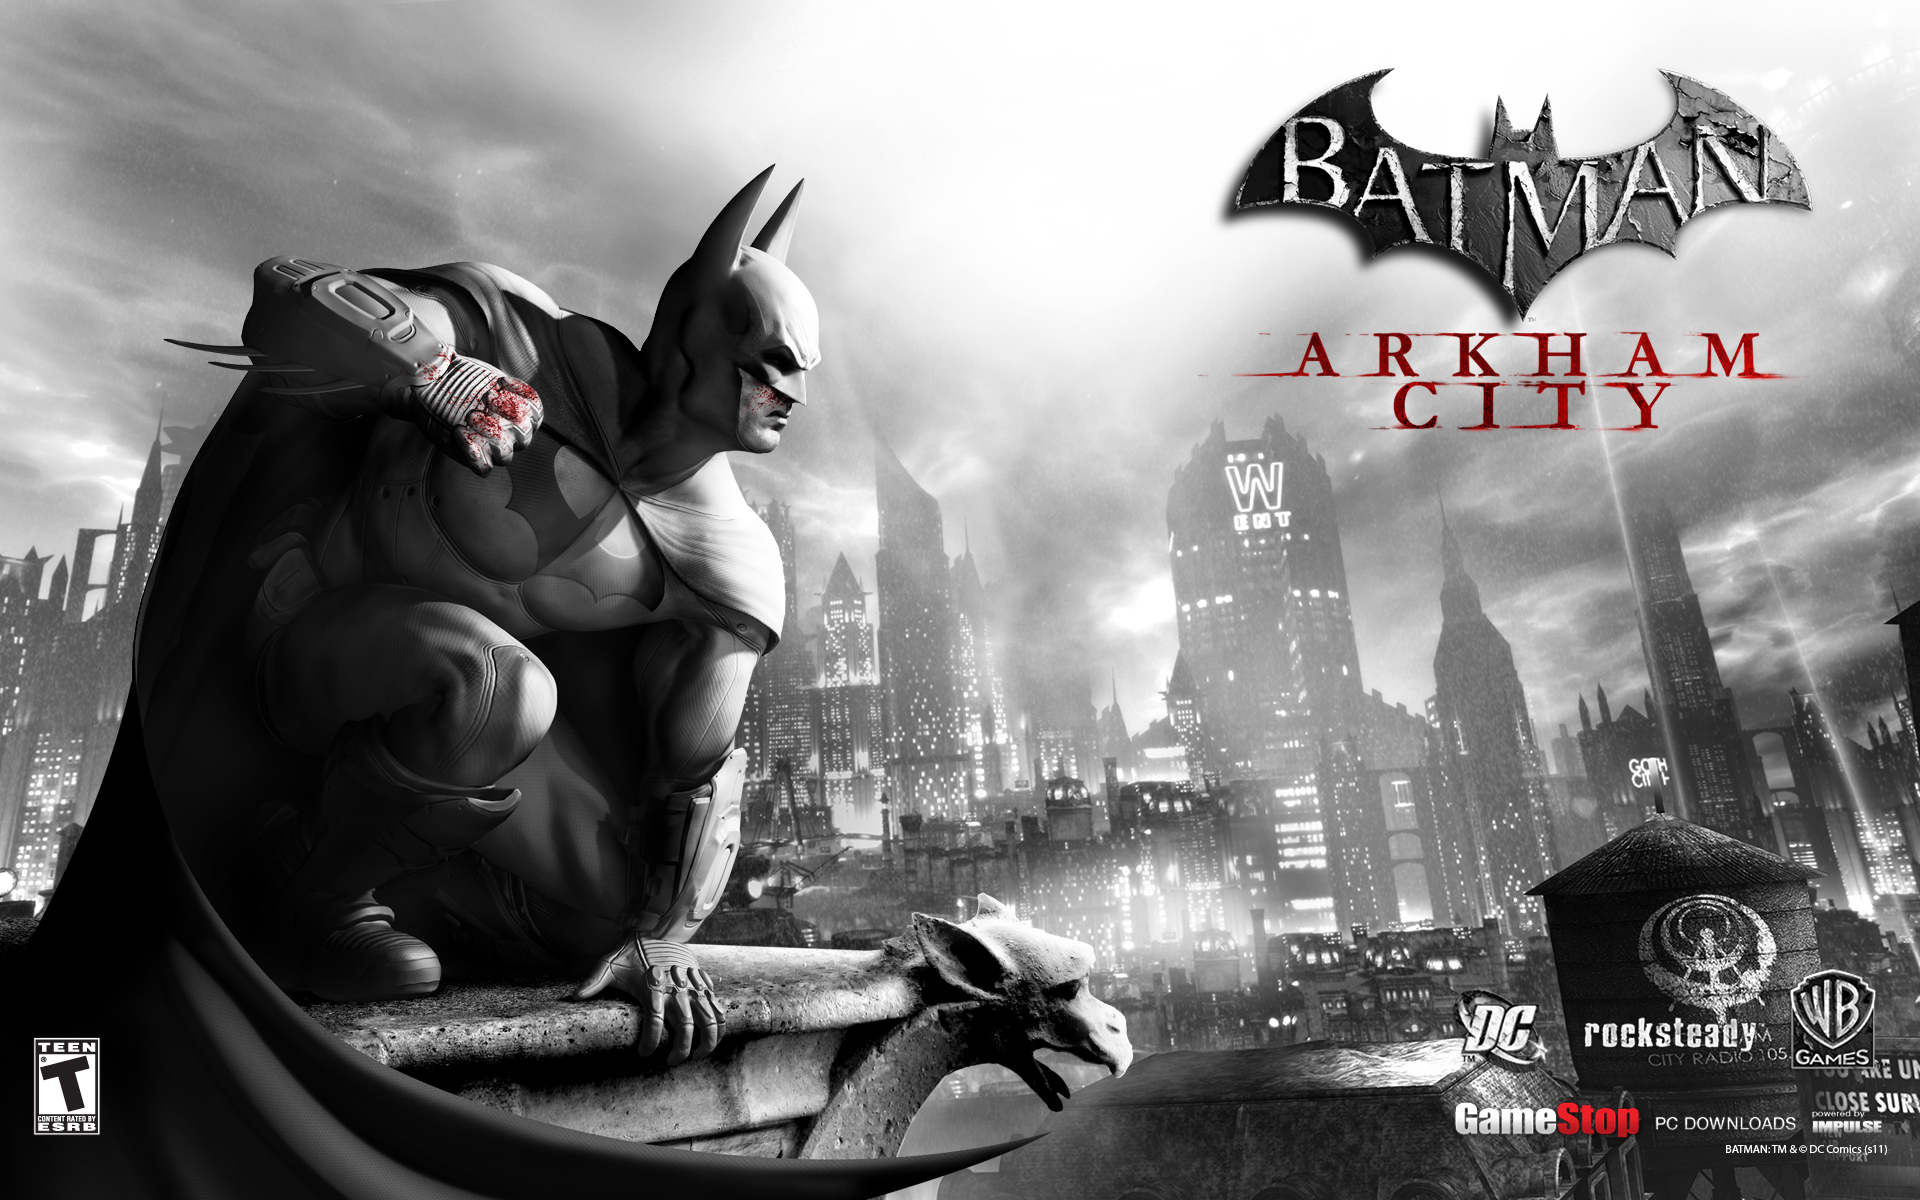 Batman Arkham City wallpaper   569197 1920x1200